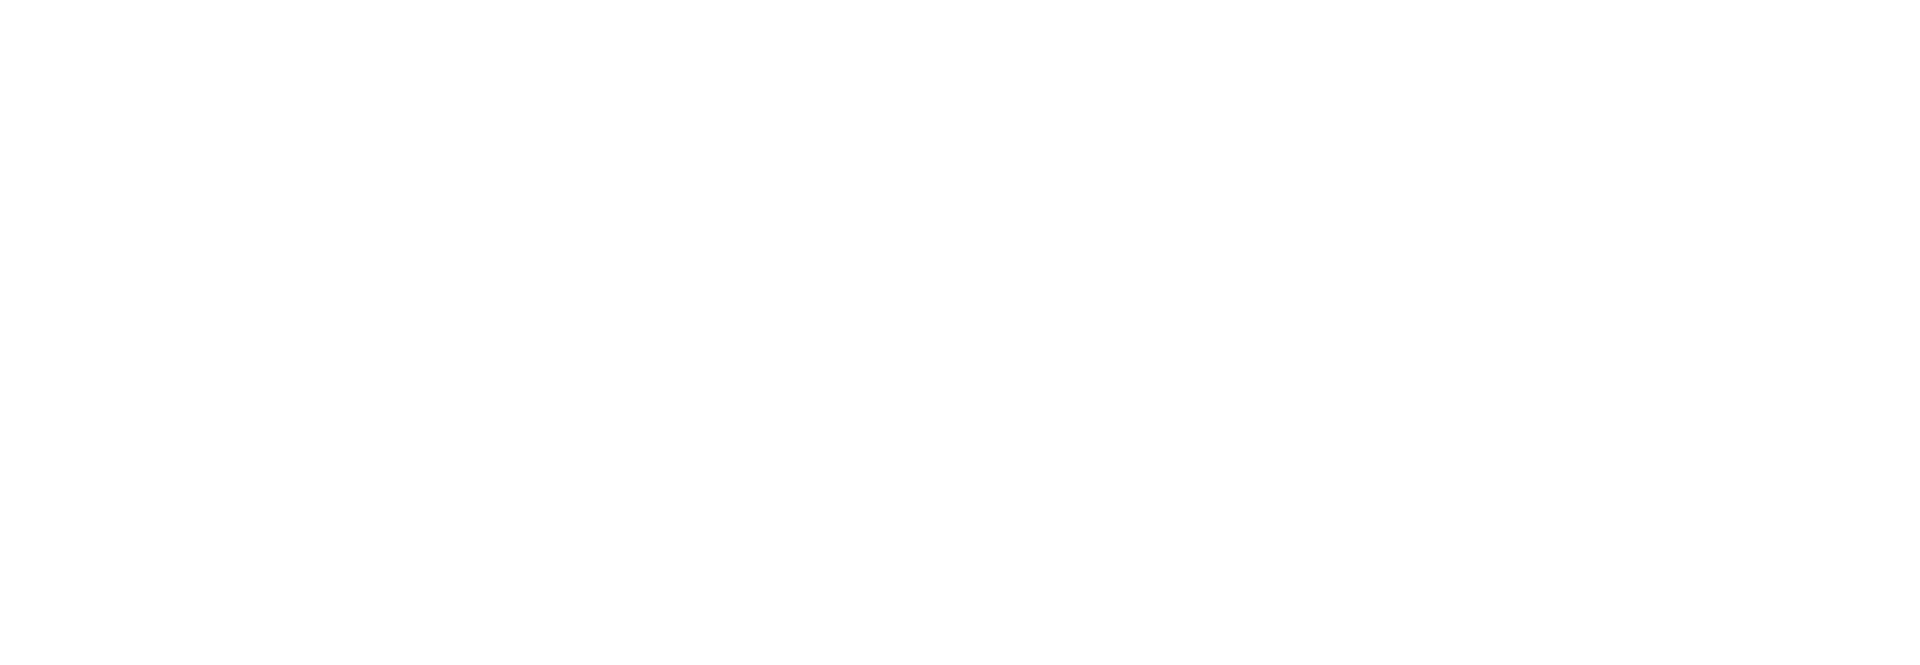 Wabi Sabi Realty Group  logo